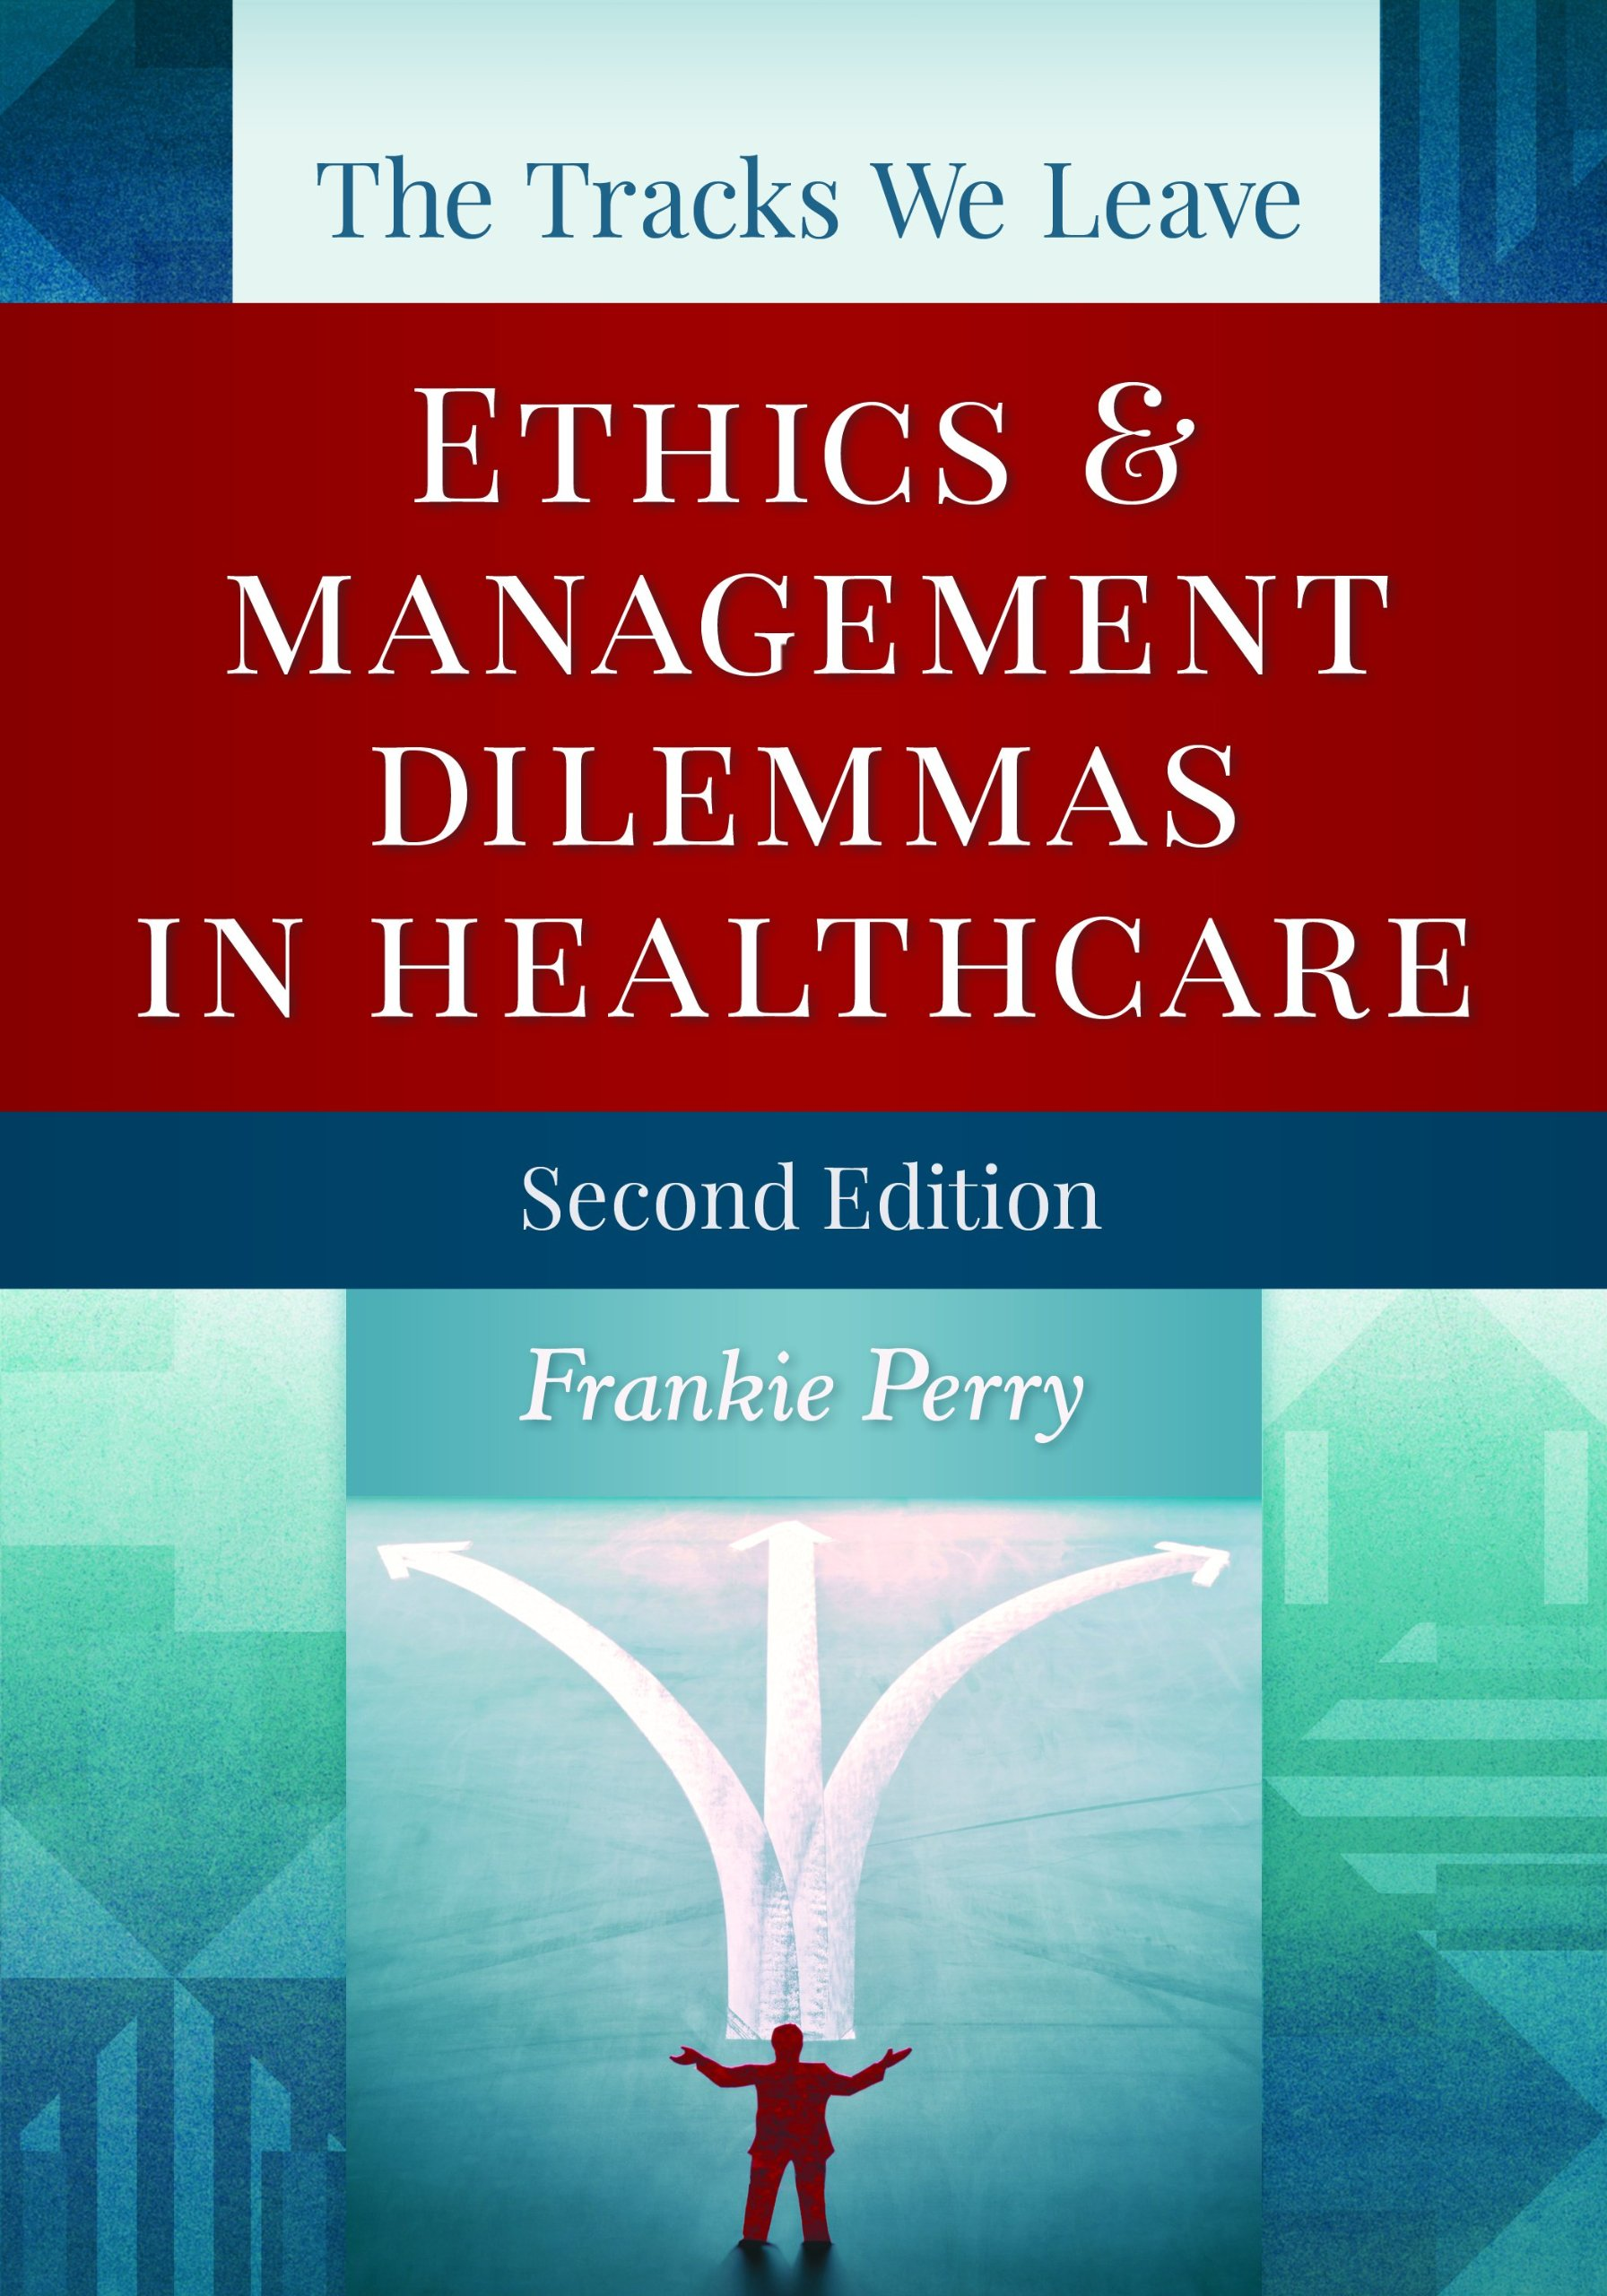 The Tracks We Leave: Ethics & Management Dilemmas in Healthcare (ACHE  Management): Amazon.co.uk: Frankie Perry: 9781567935783: Books